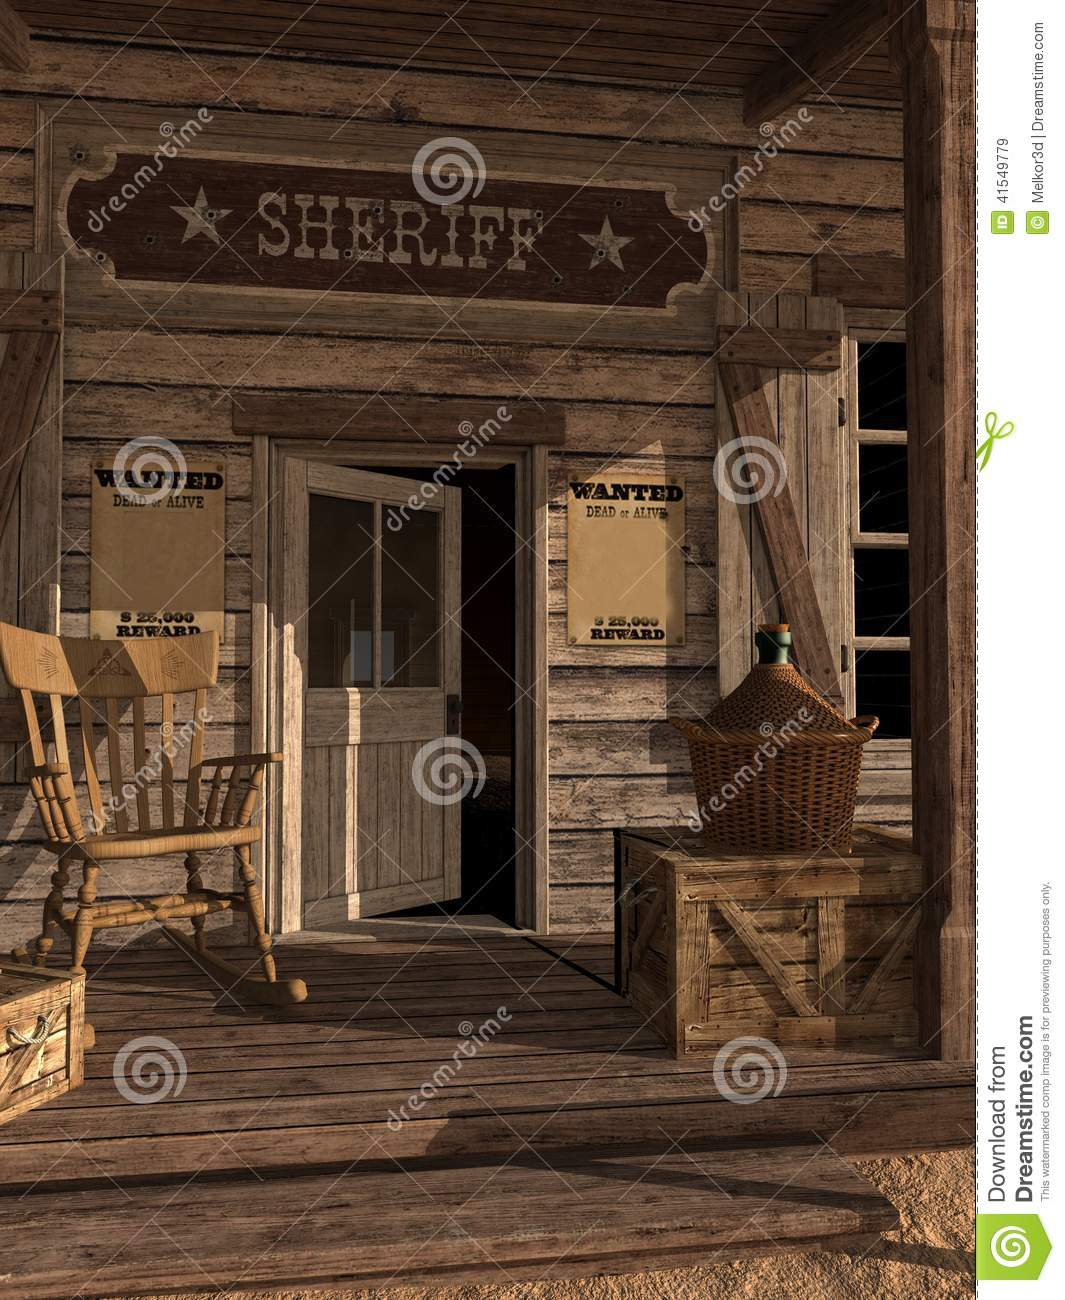 Door To Sheriff's Office Stock Illustration - Image: 41549779